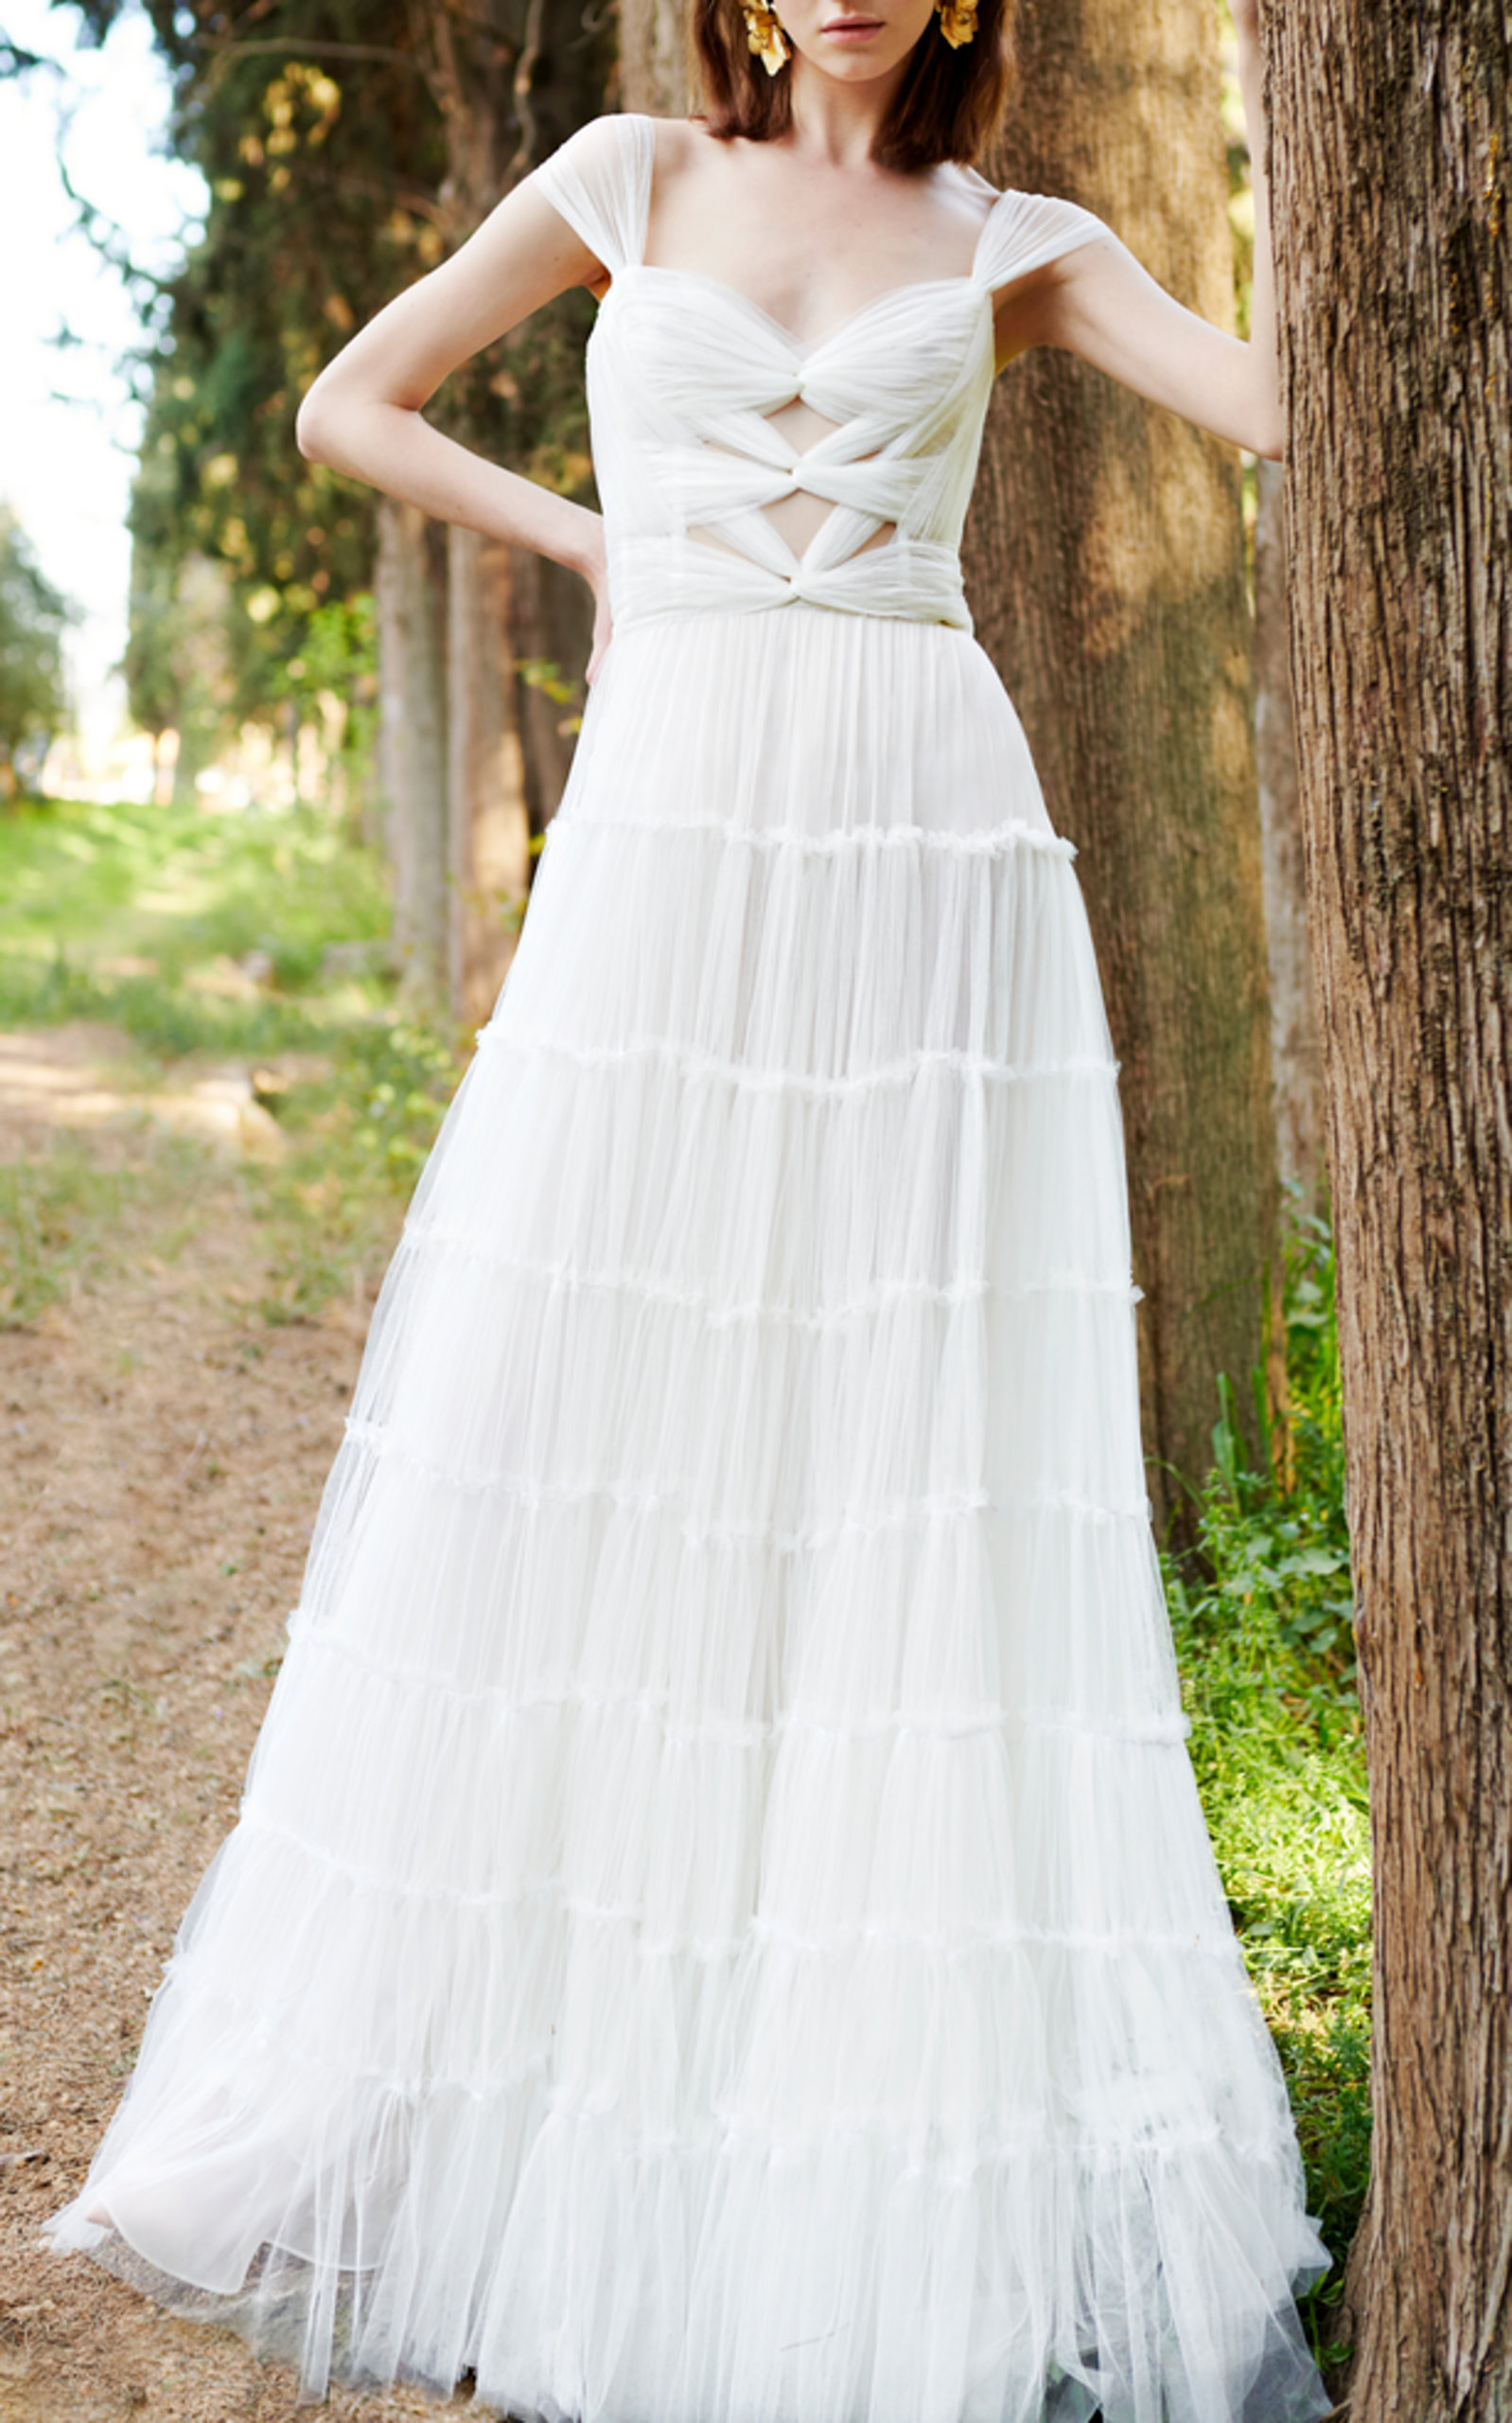 COSTARELLOS BRIDAL CORSET TIERED GOWN